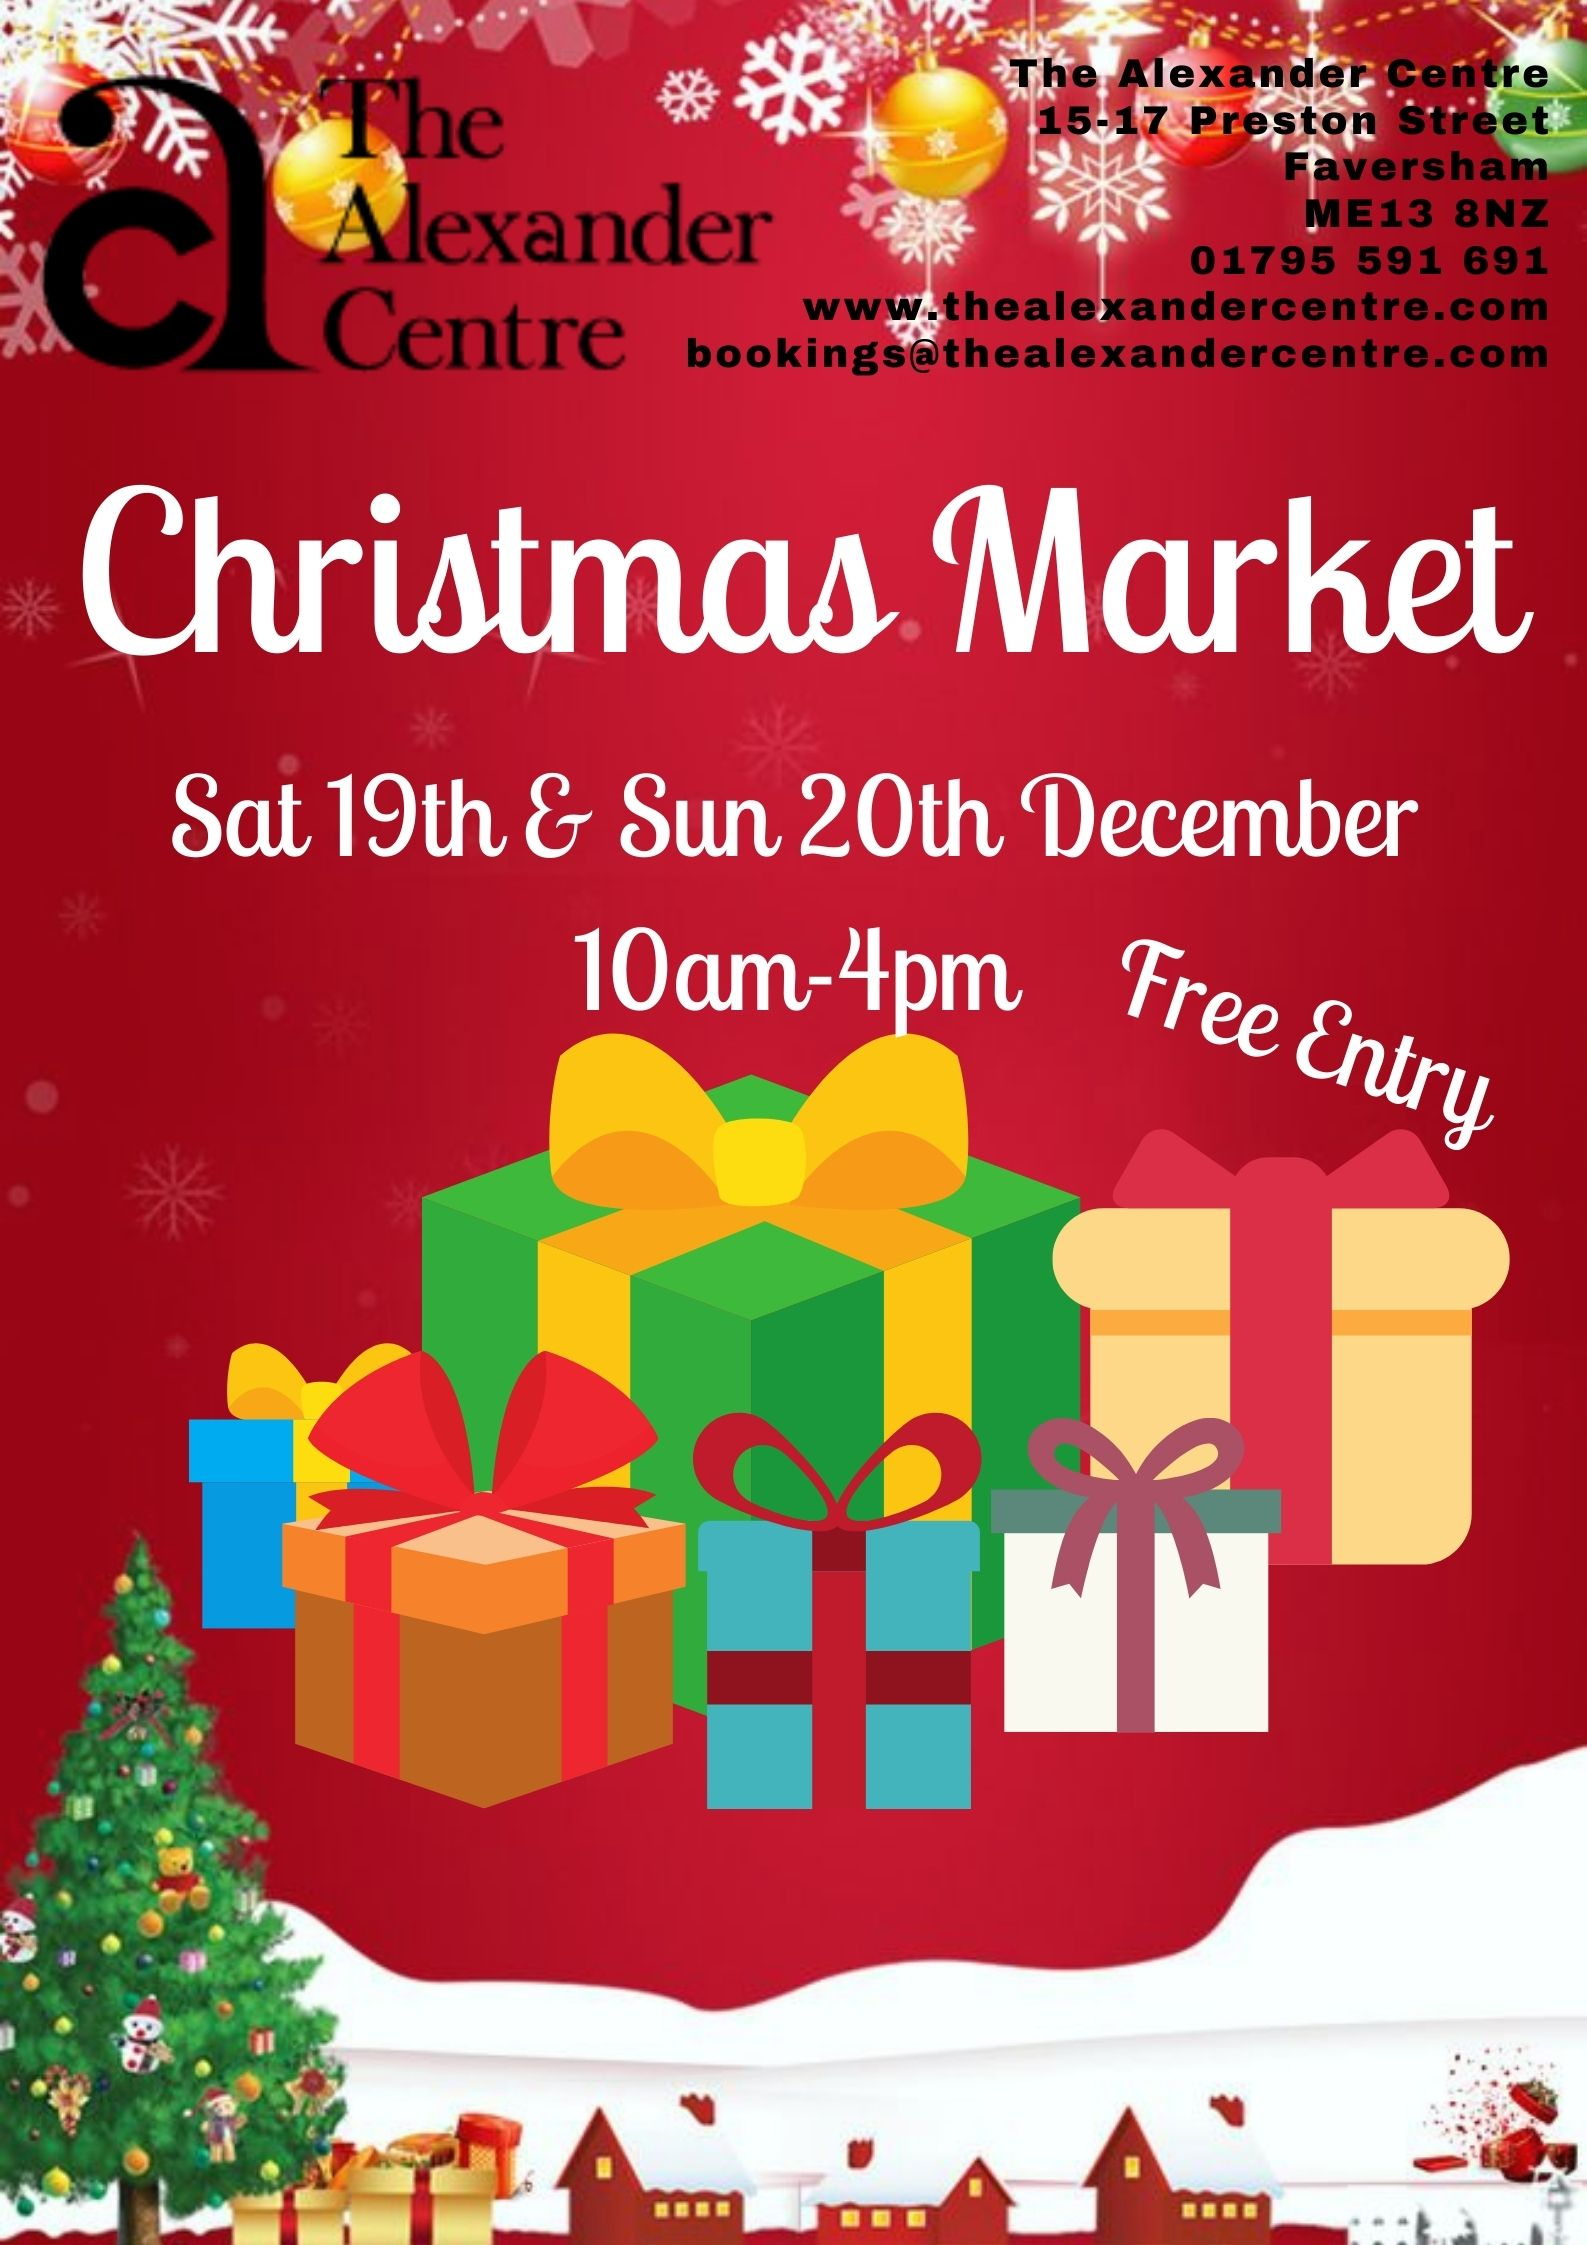 The Alexander Centre's Big Christmas Market